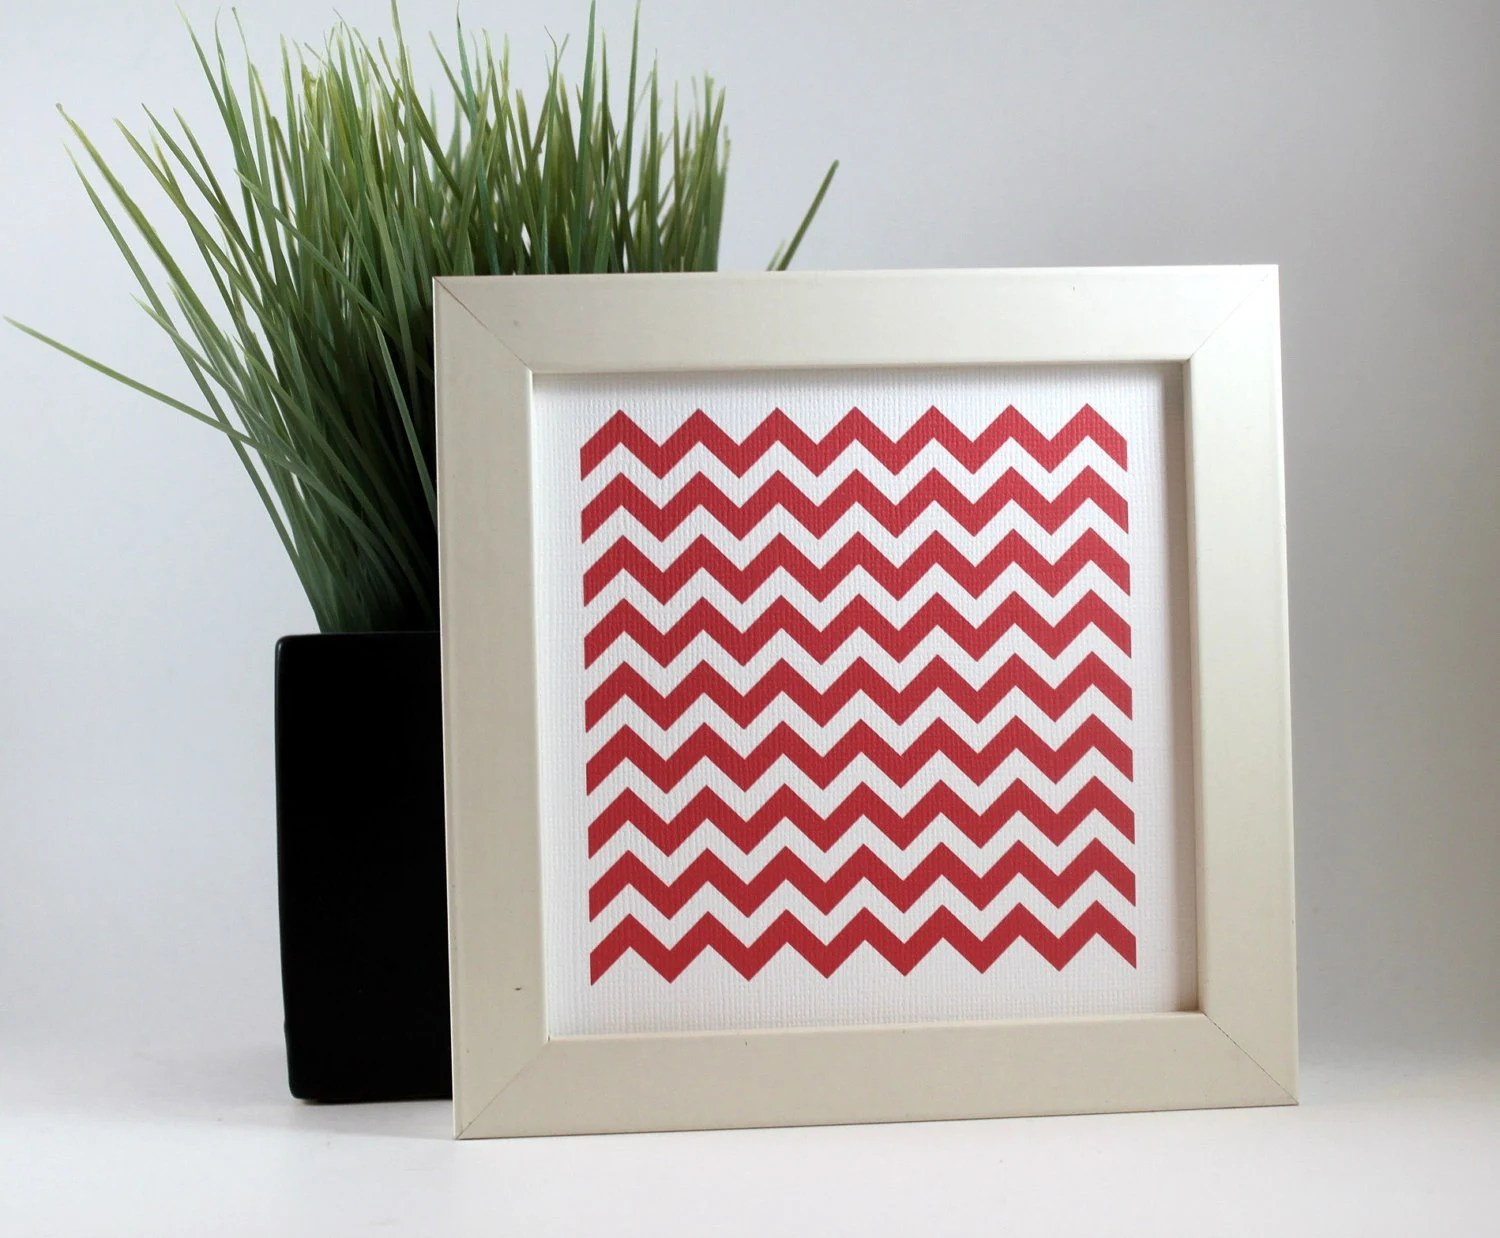 Chevron Zig Zag Geometric Wall Art Home Decor Print - Fuchsia - craftedbylindy